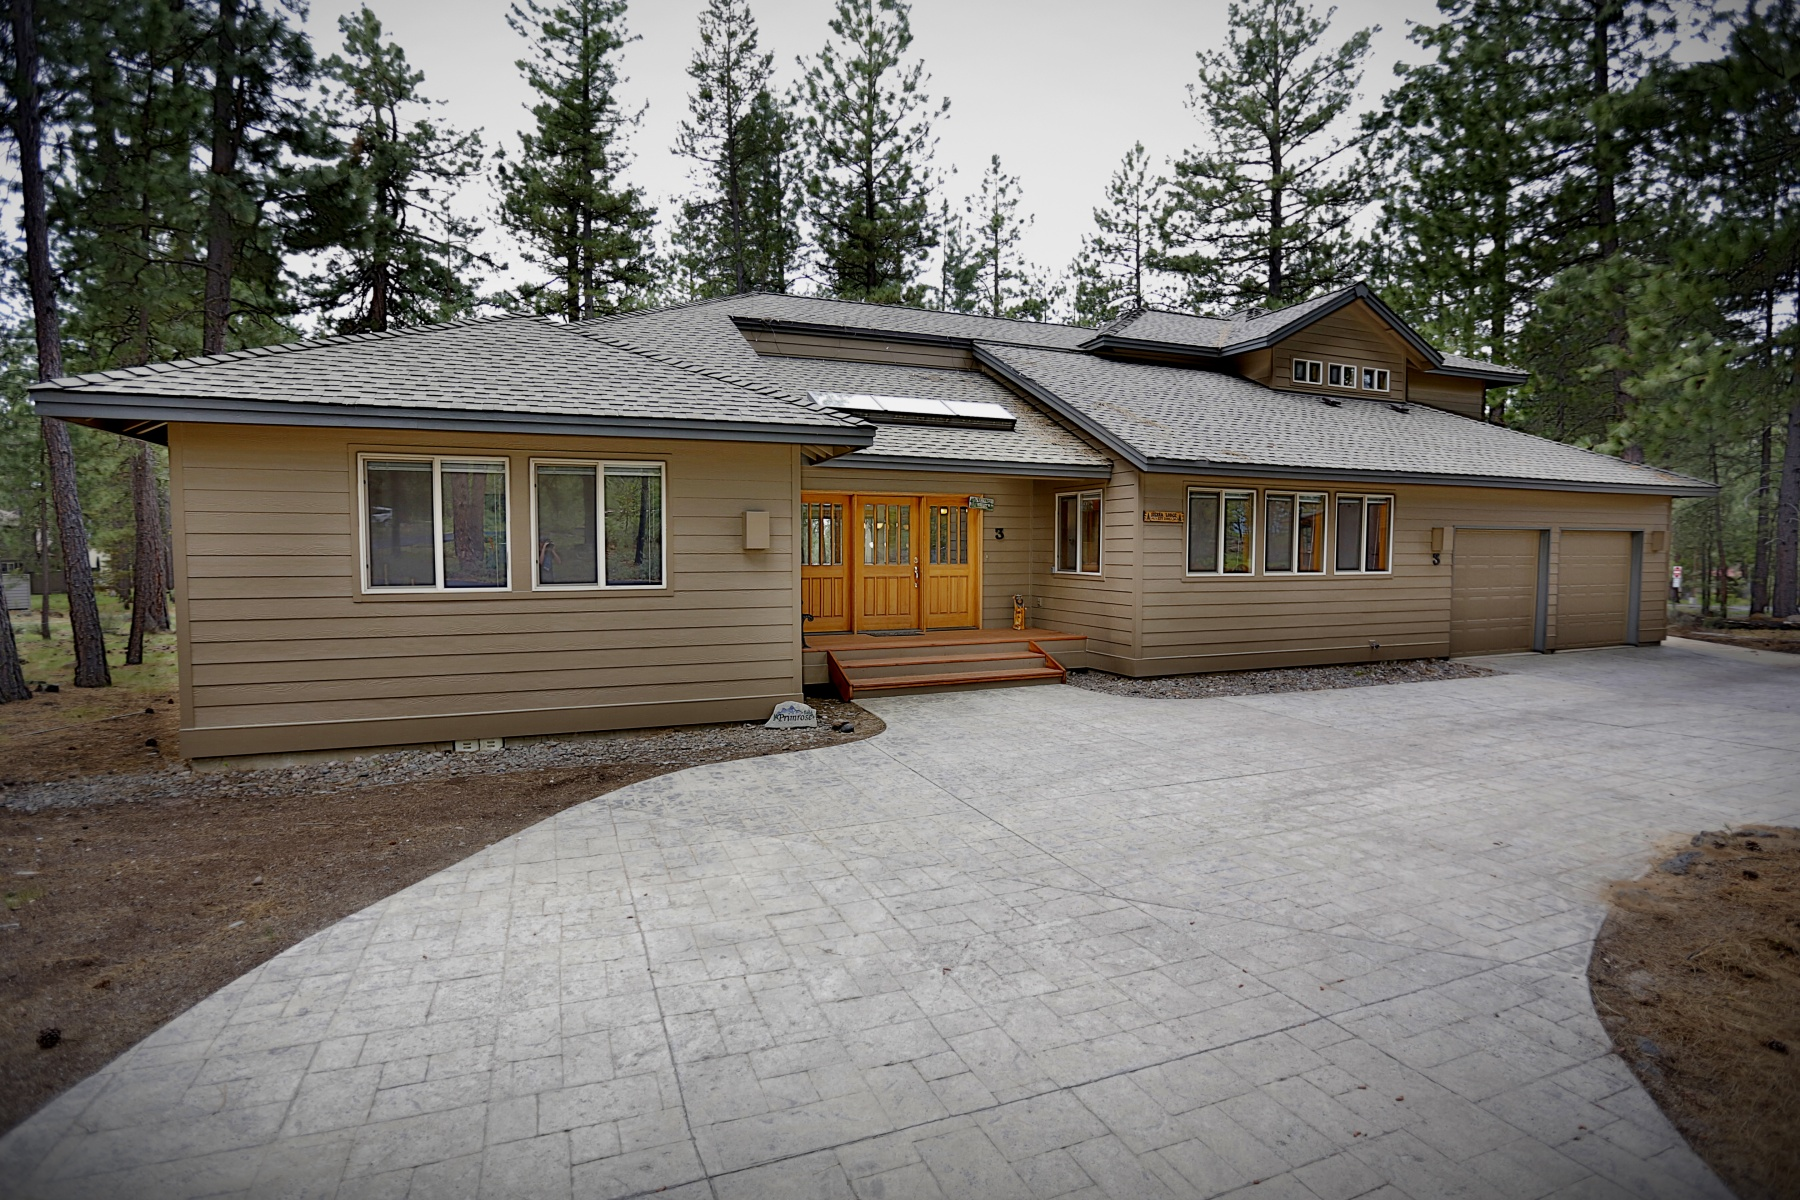 Single Family Home for Sale at Spacious 3600 Sq Ft Fort Rock Gem 3 Newberry Ln Sunriver, Oregon, 97707 United States